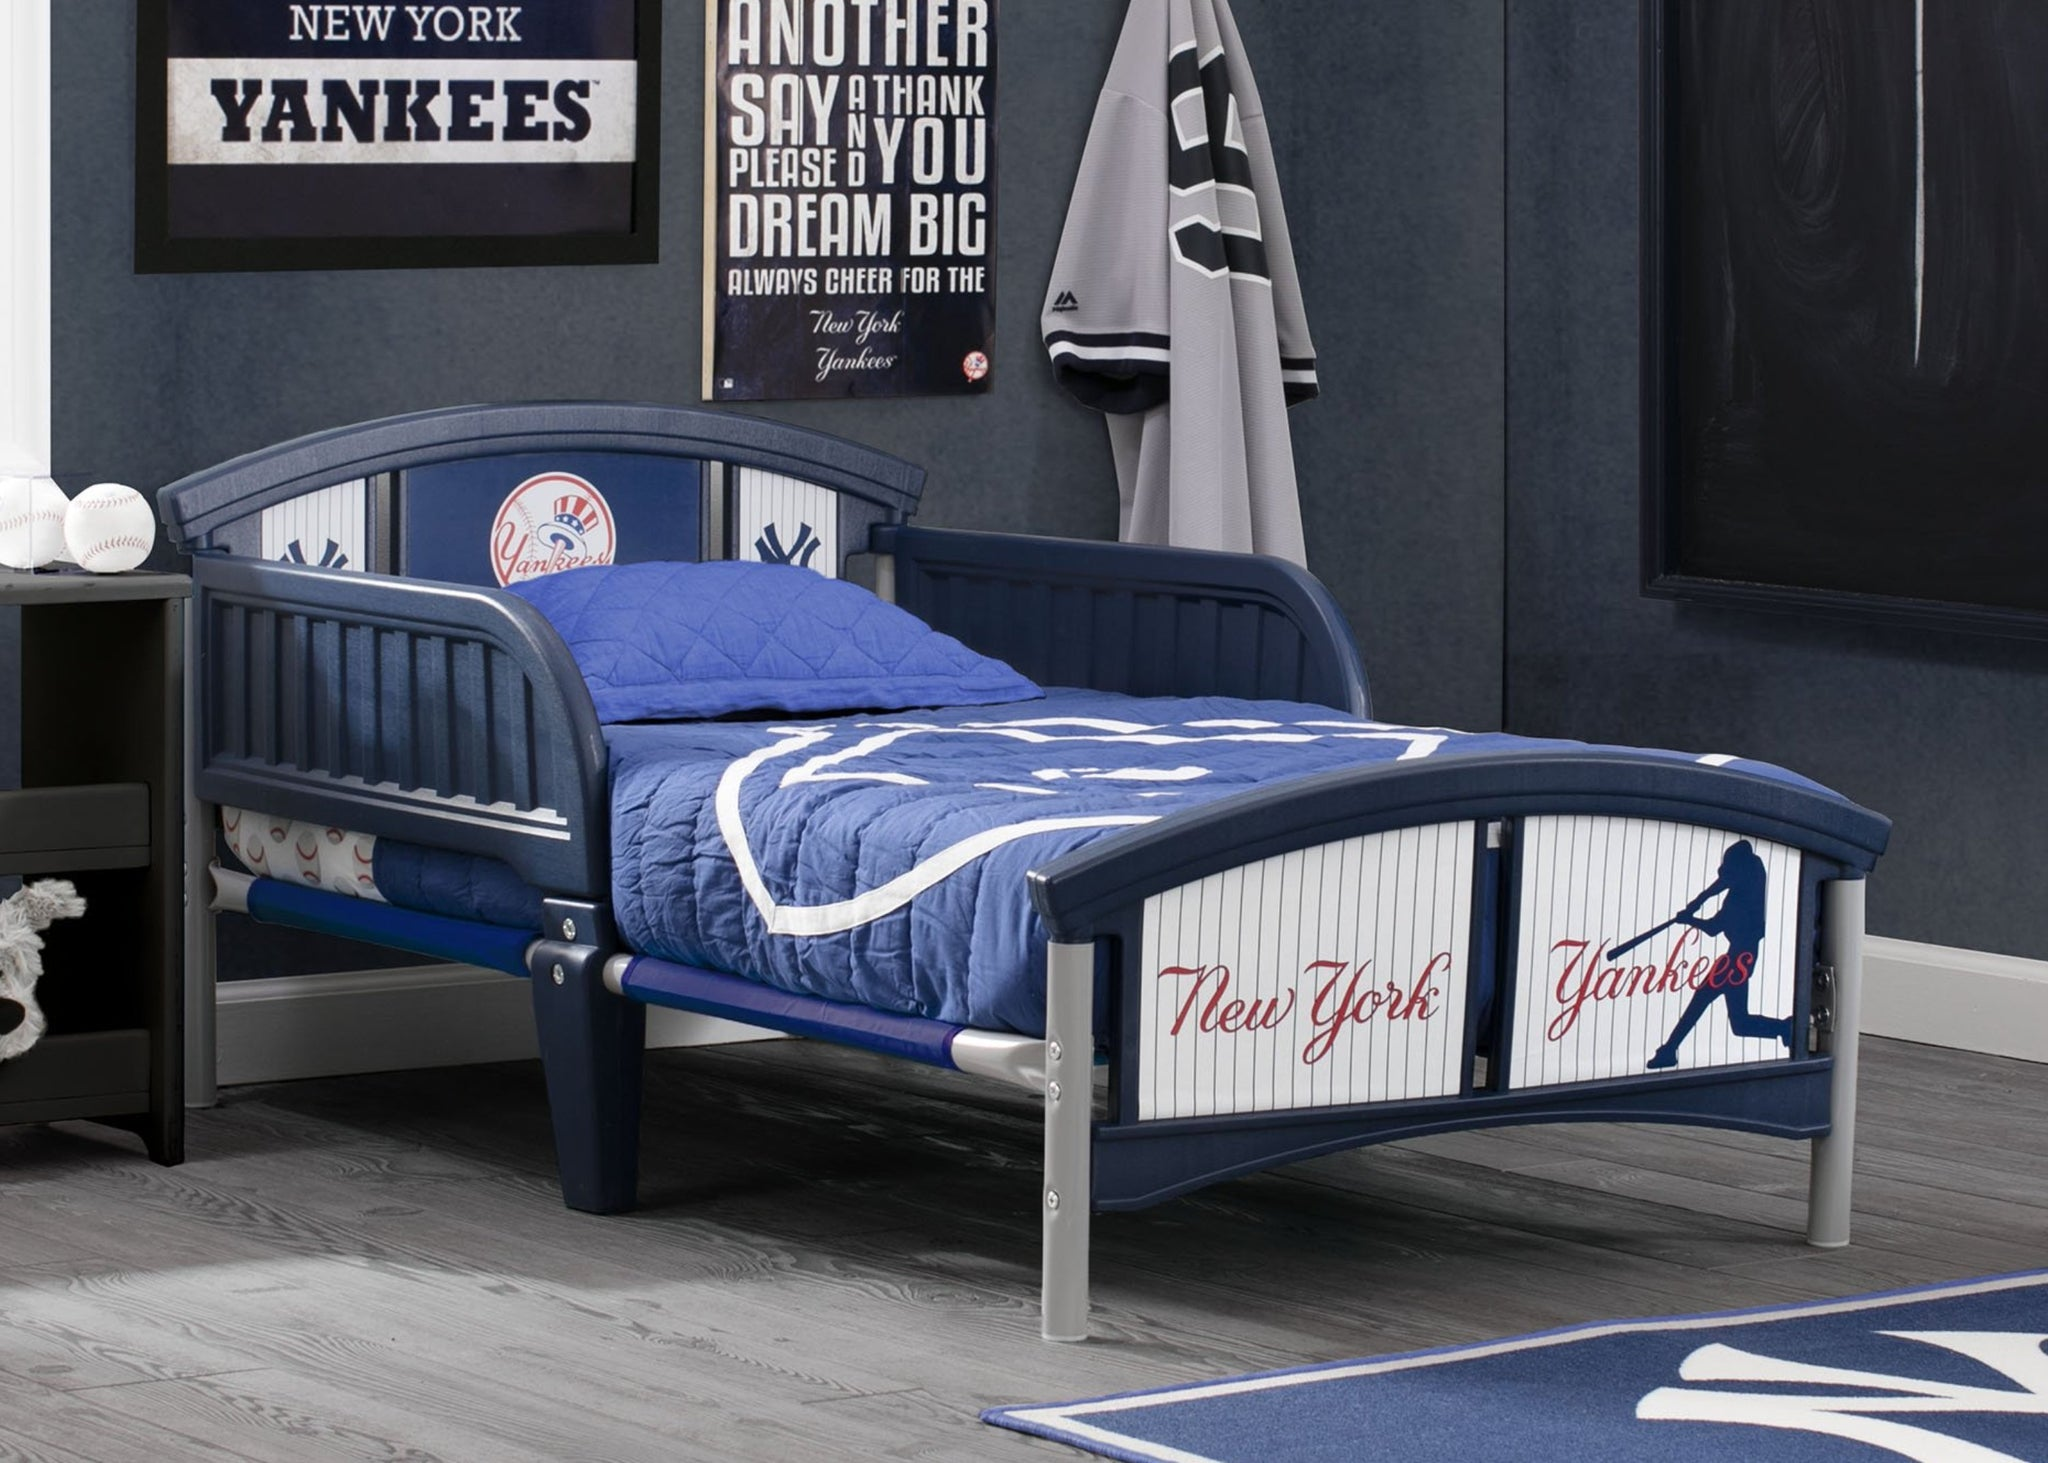 New York Yankees Plastic Toddler Bed